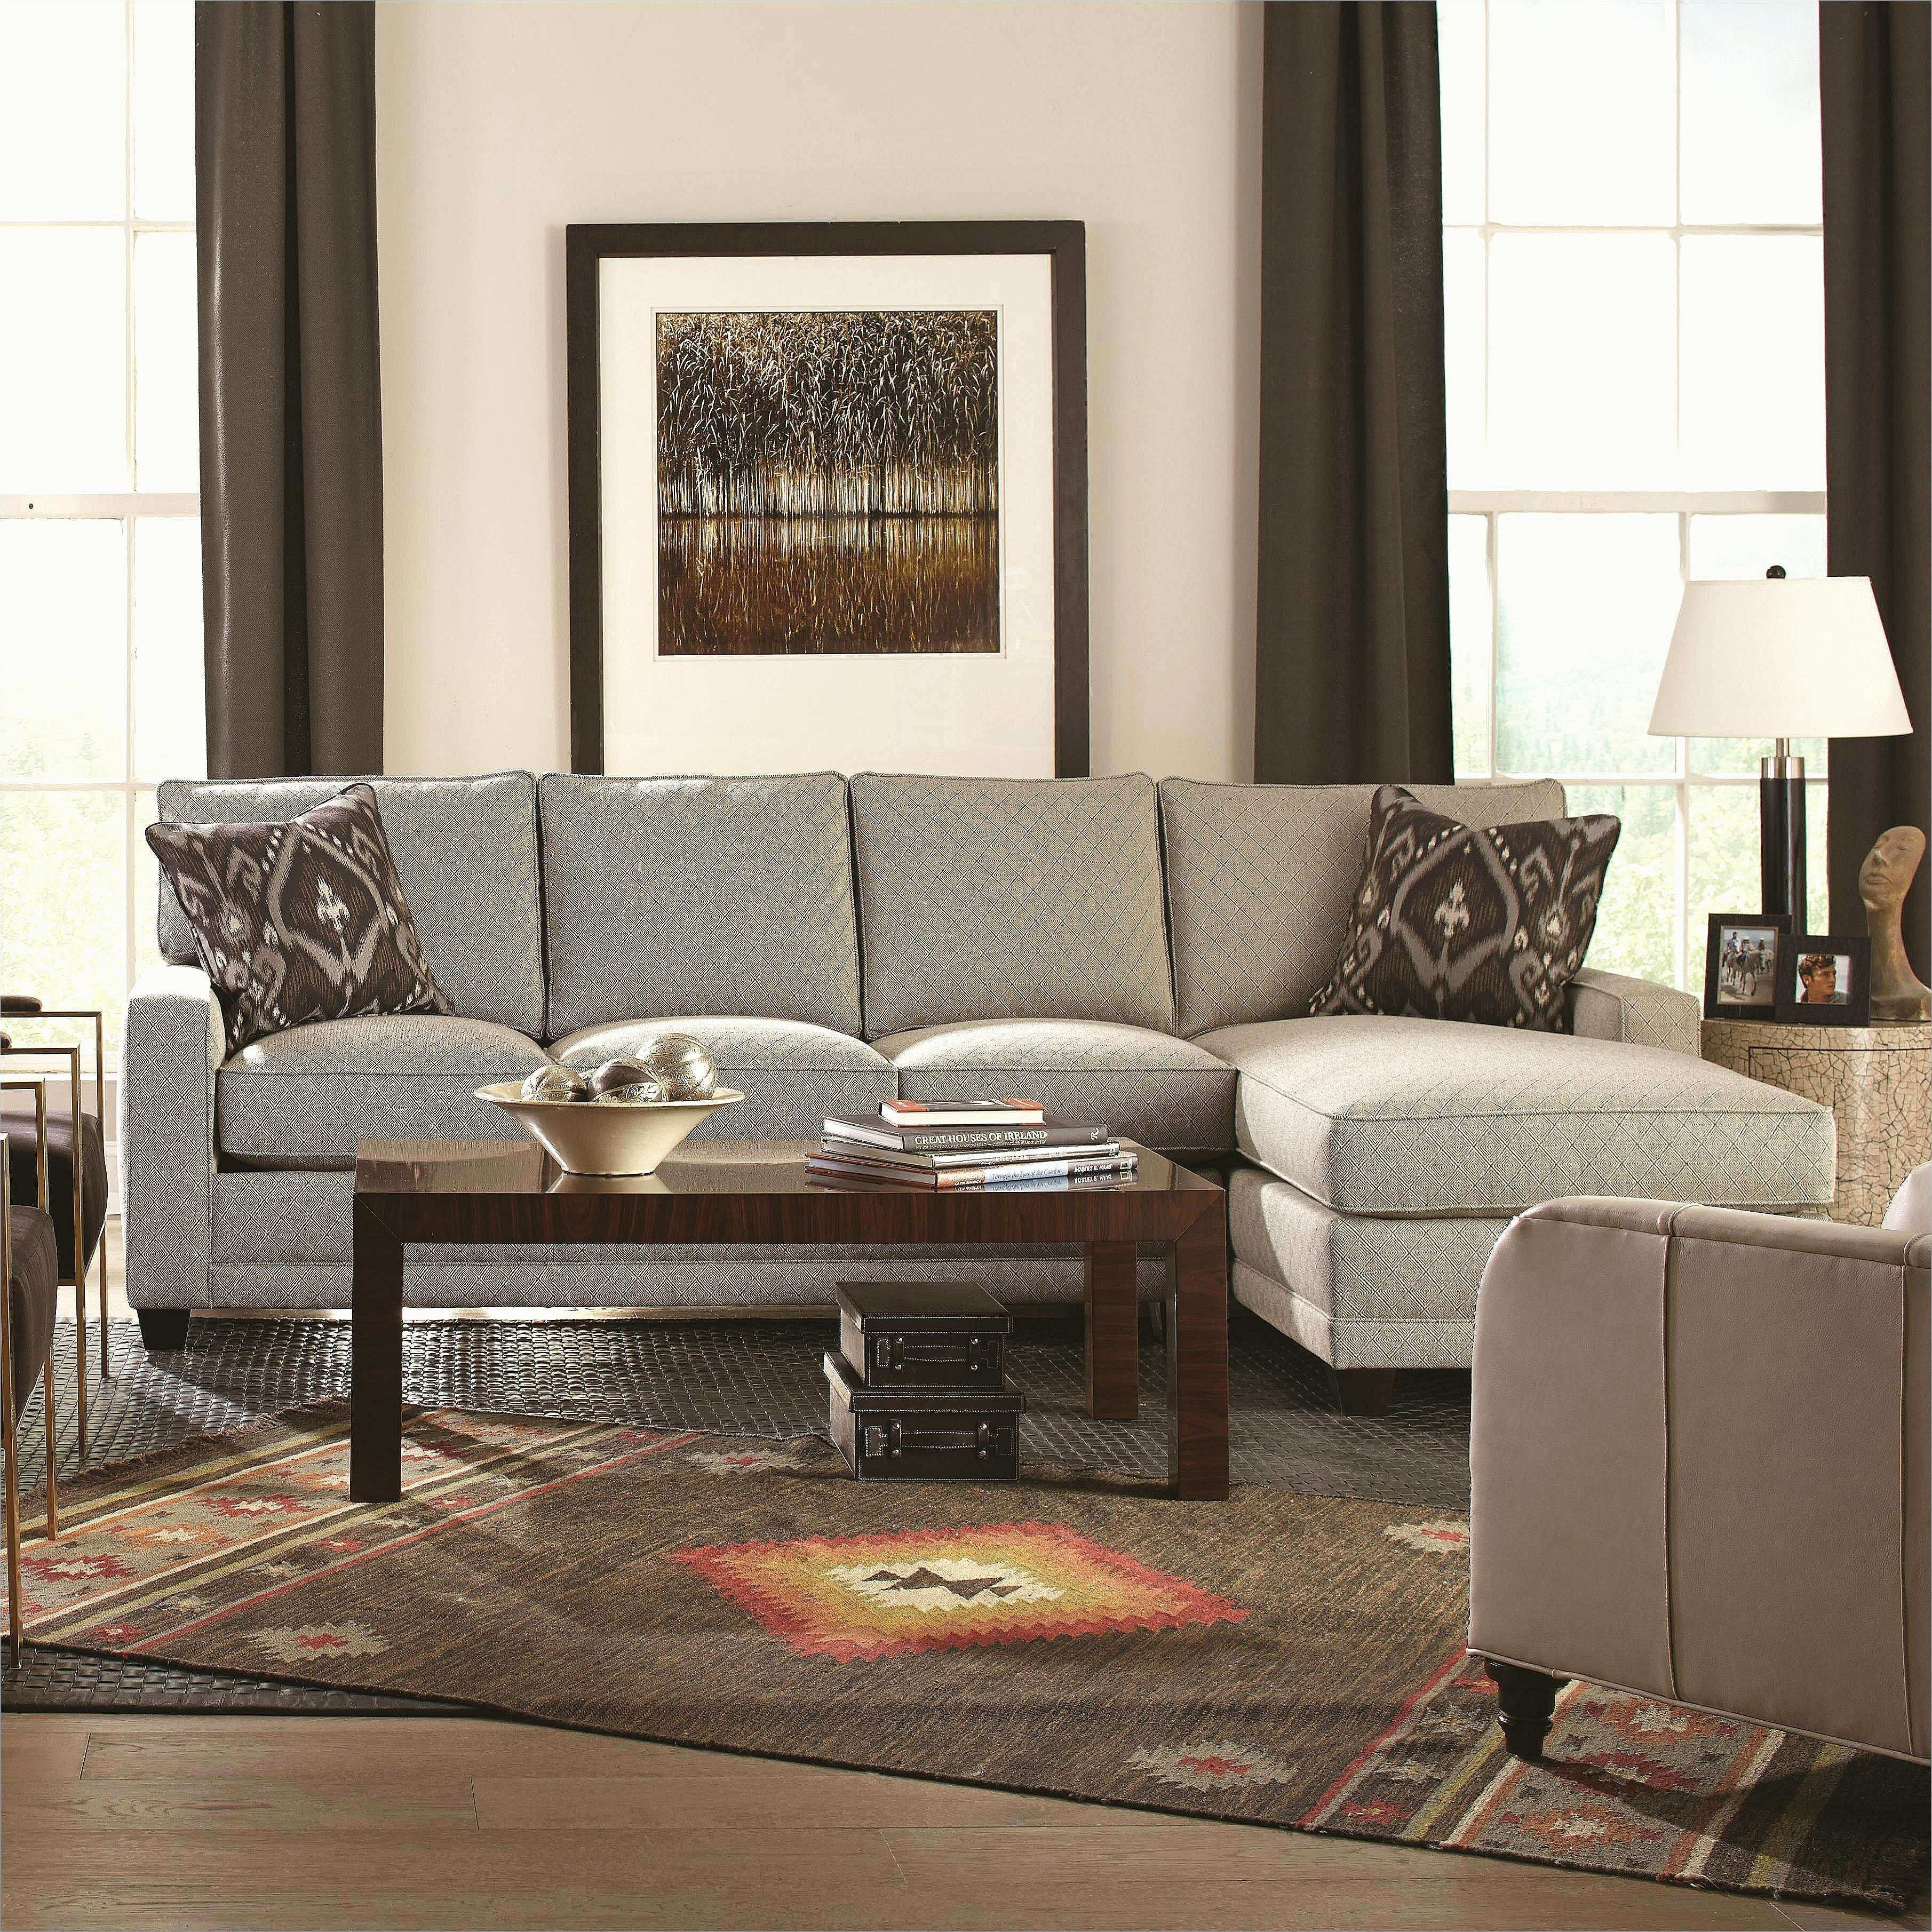 Home Decor Painting Ideas Best Modern Living Room Furniture New